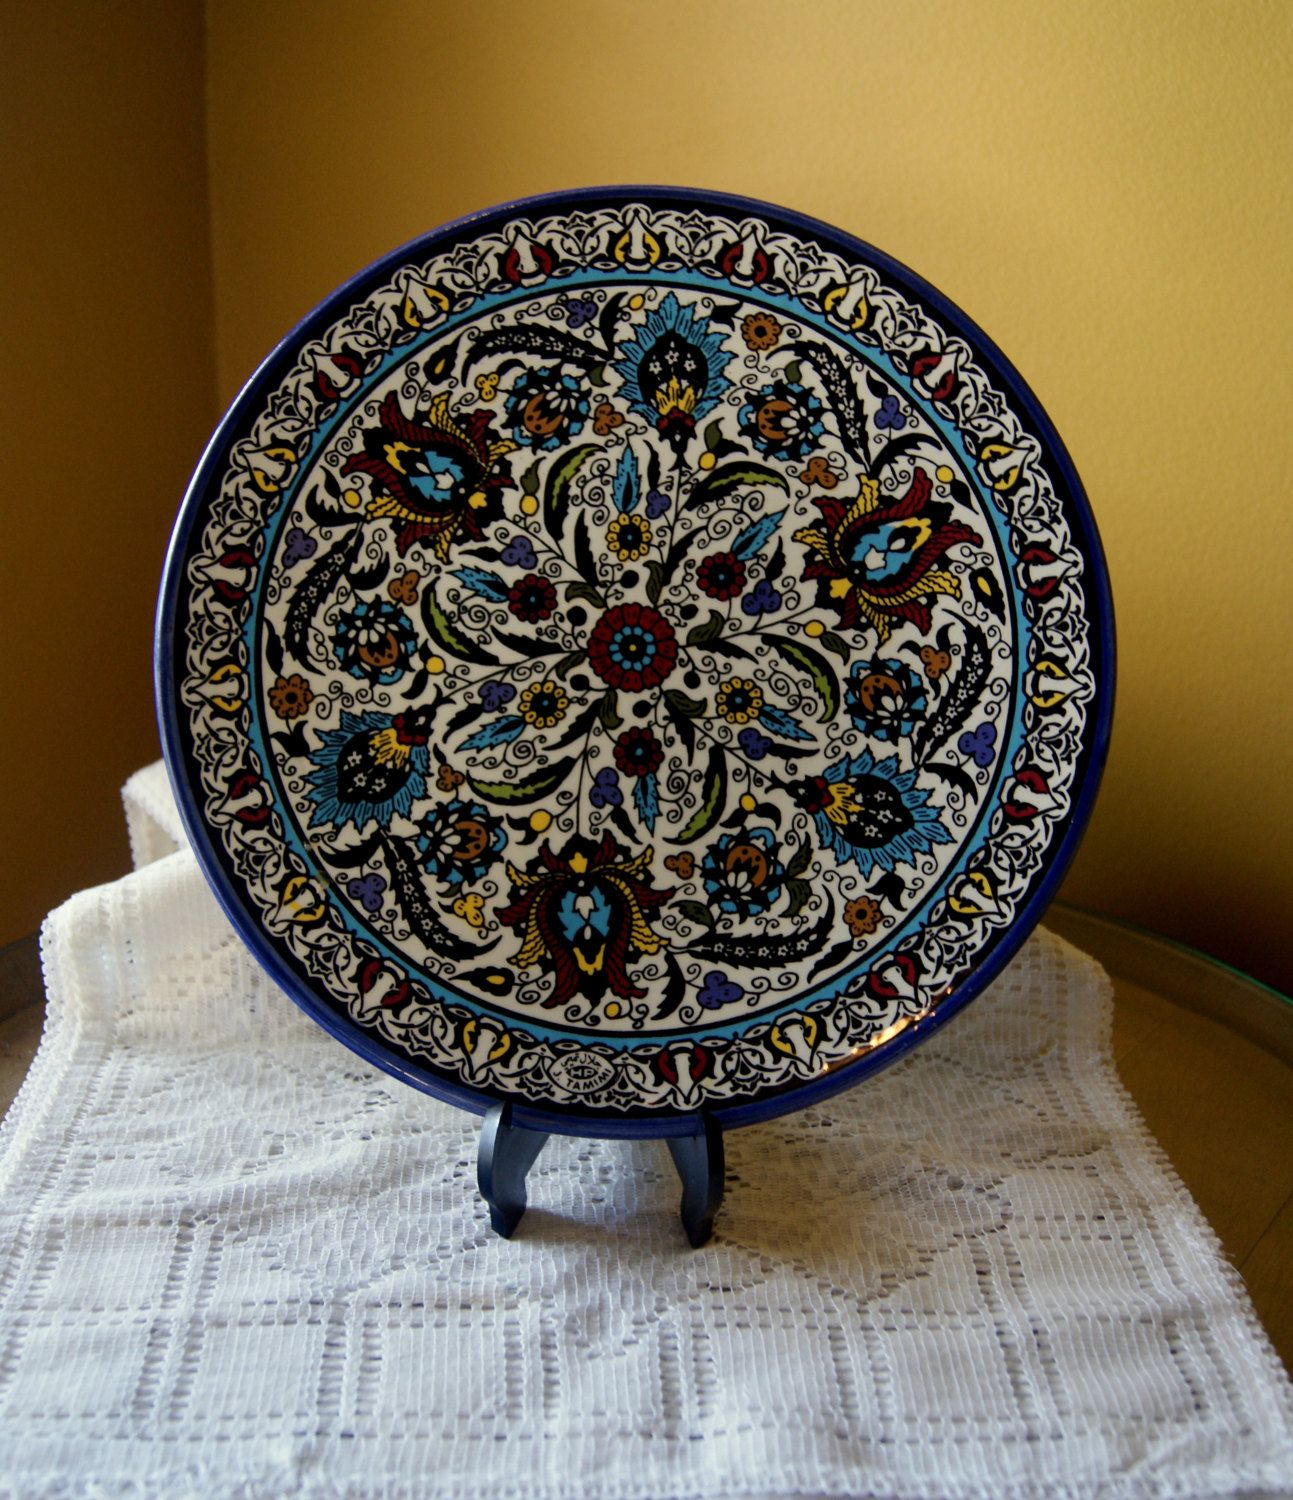 Vintage Decorative Plate, Kaleidoscope, Floral, Tamimi Ceramics, Pottery, Handmade Middle